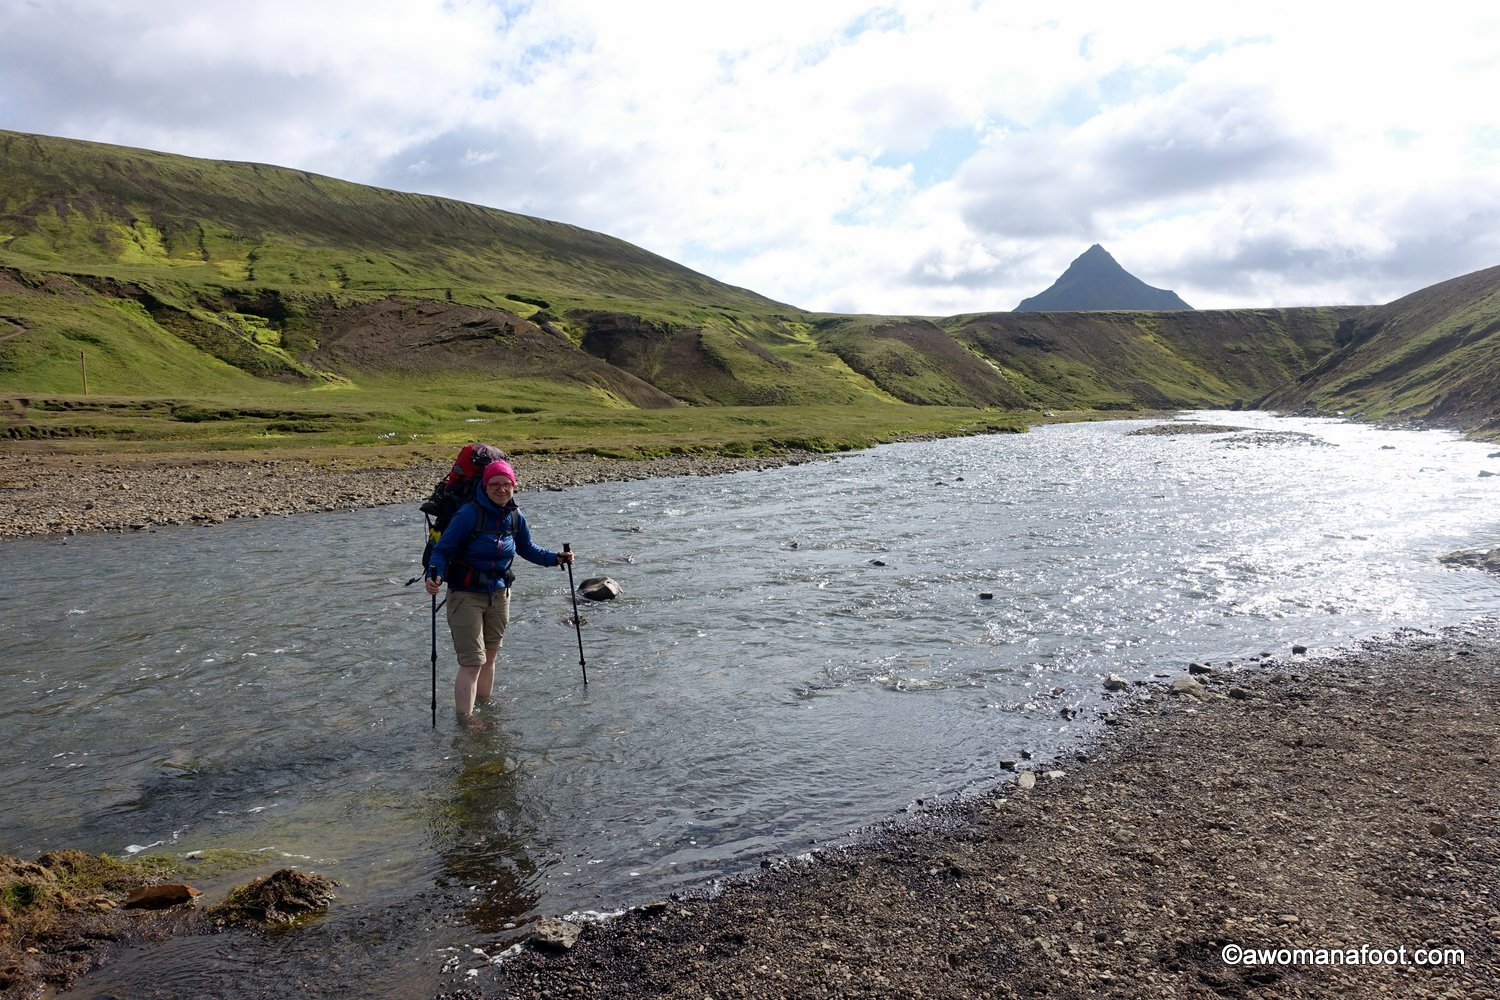 Before you hit the trails in Iceland, learn a few things to go prepared! Read this collection of useful tips and advice on hiking in Iceland. Awomanafoot.com |#Iceland | #trails | #hiking | #HikingIceland | All you need to know before hiking in Iceland | Female solo hiking in Iceland | Guide to hiking in Iceland | What you need to know before hiking in Iceland |